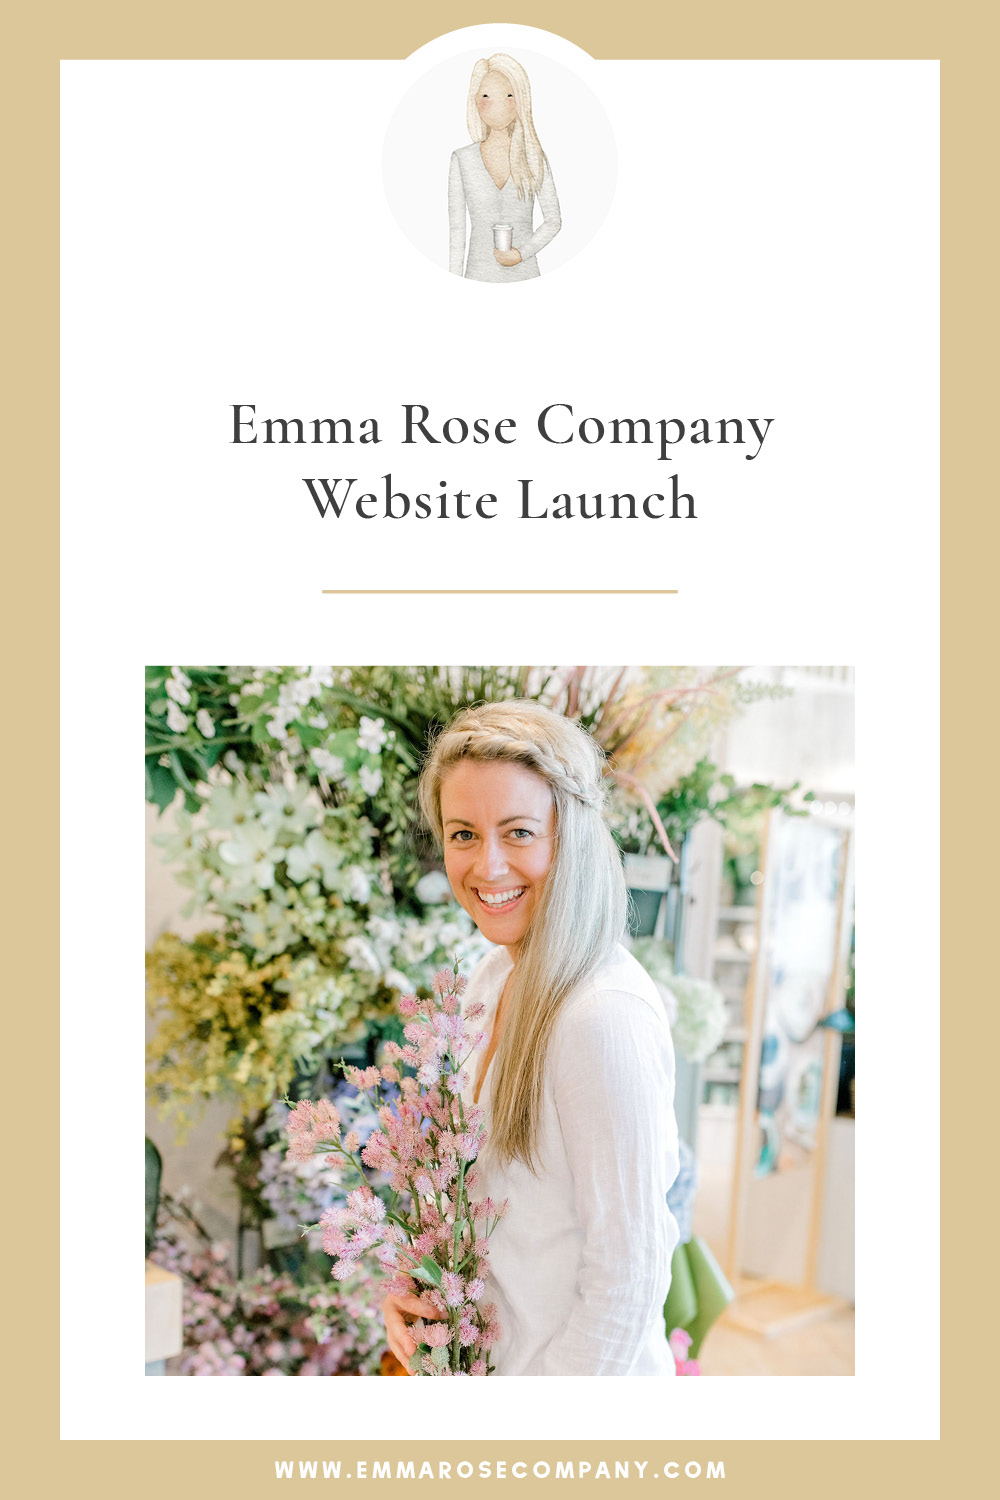 I'm a self-made, self-taught, successful photographer and web designer who learned everything she knows the absolute hardest way. I share it all with other photographers because I'd rather see them succeed alongside me than burnout behind me.  #emmarosecompany #pnwphotographer #weddingphotography #websitedesigner #squarespace #dreamchaserswithcameras